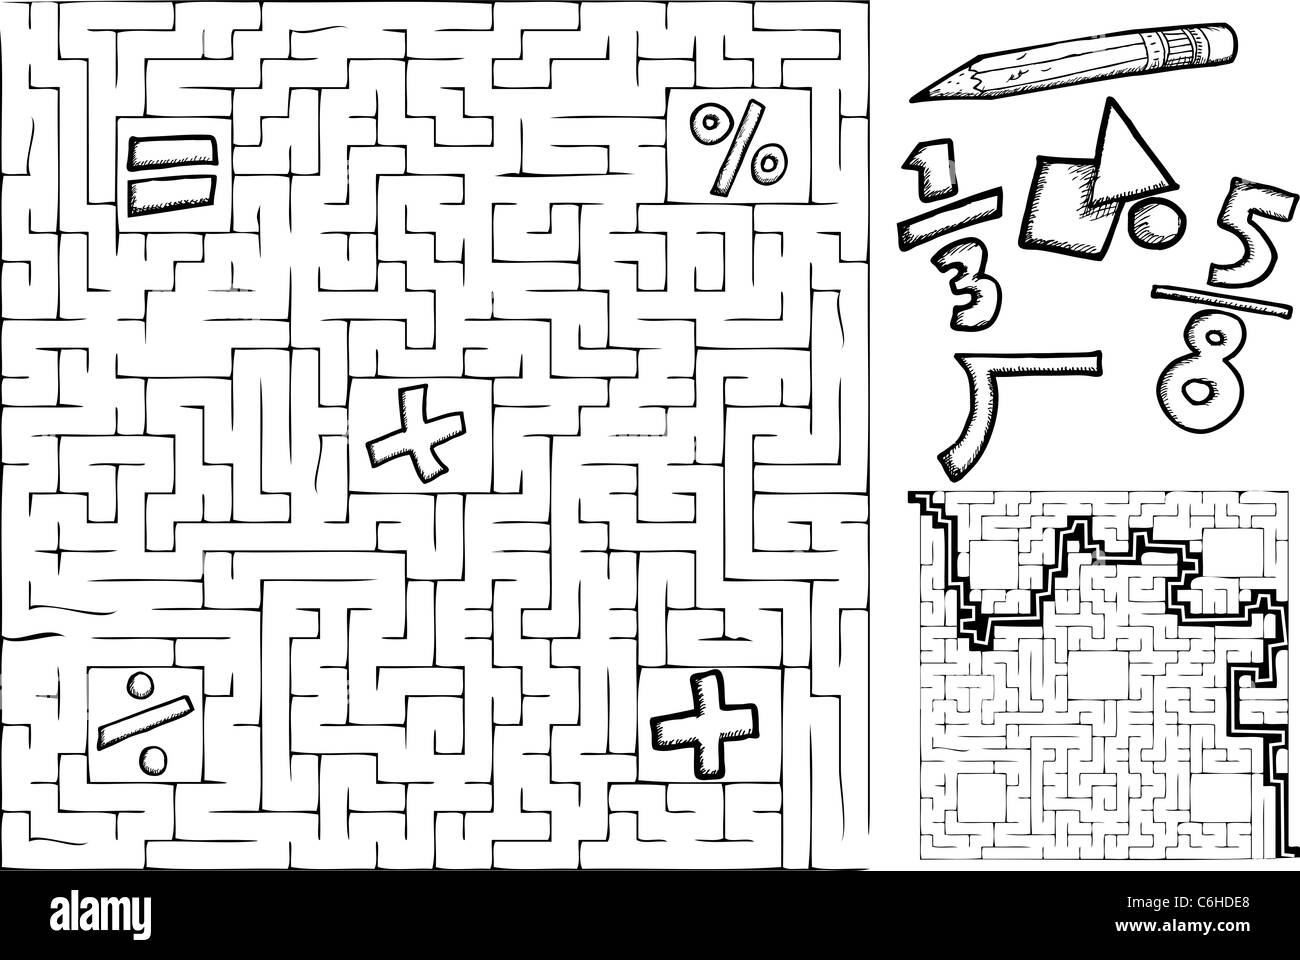 Coloring Page Math Maze With Interchangeable Symbols With